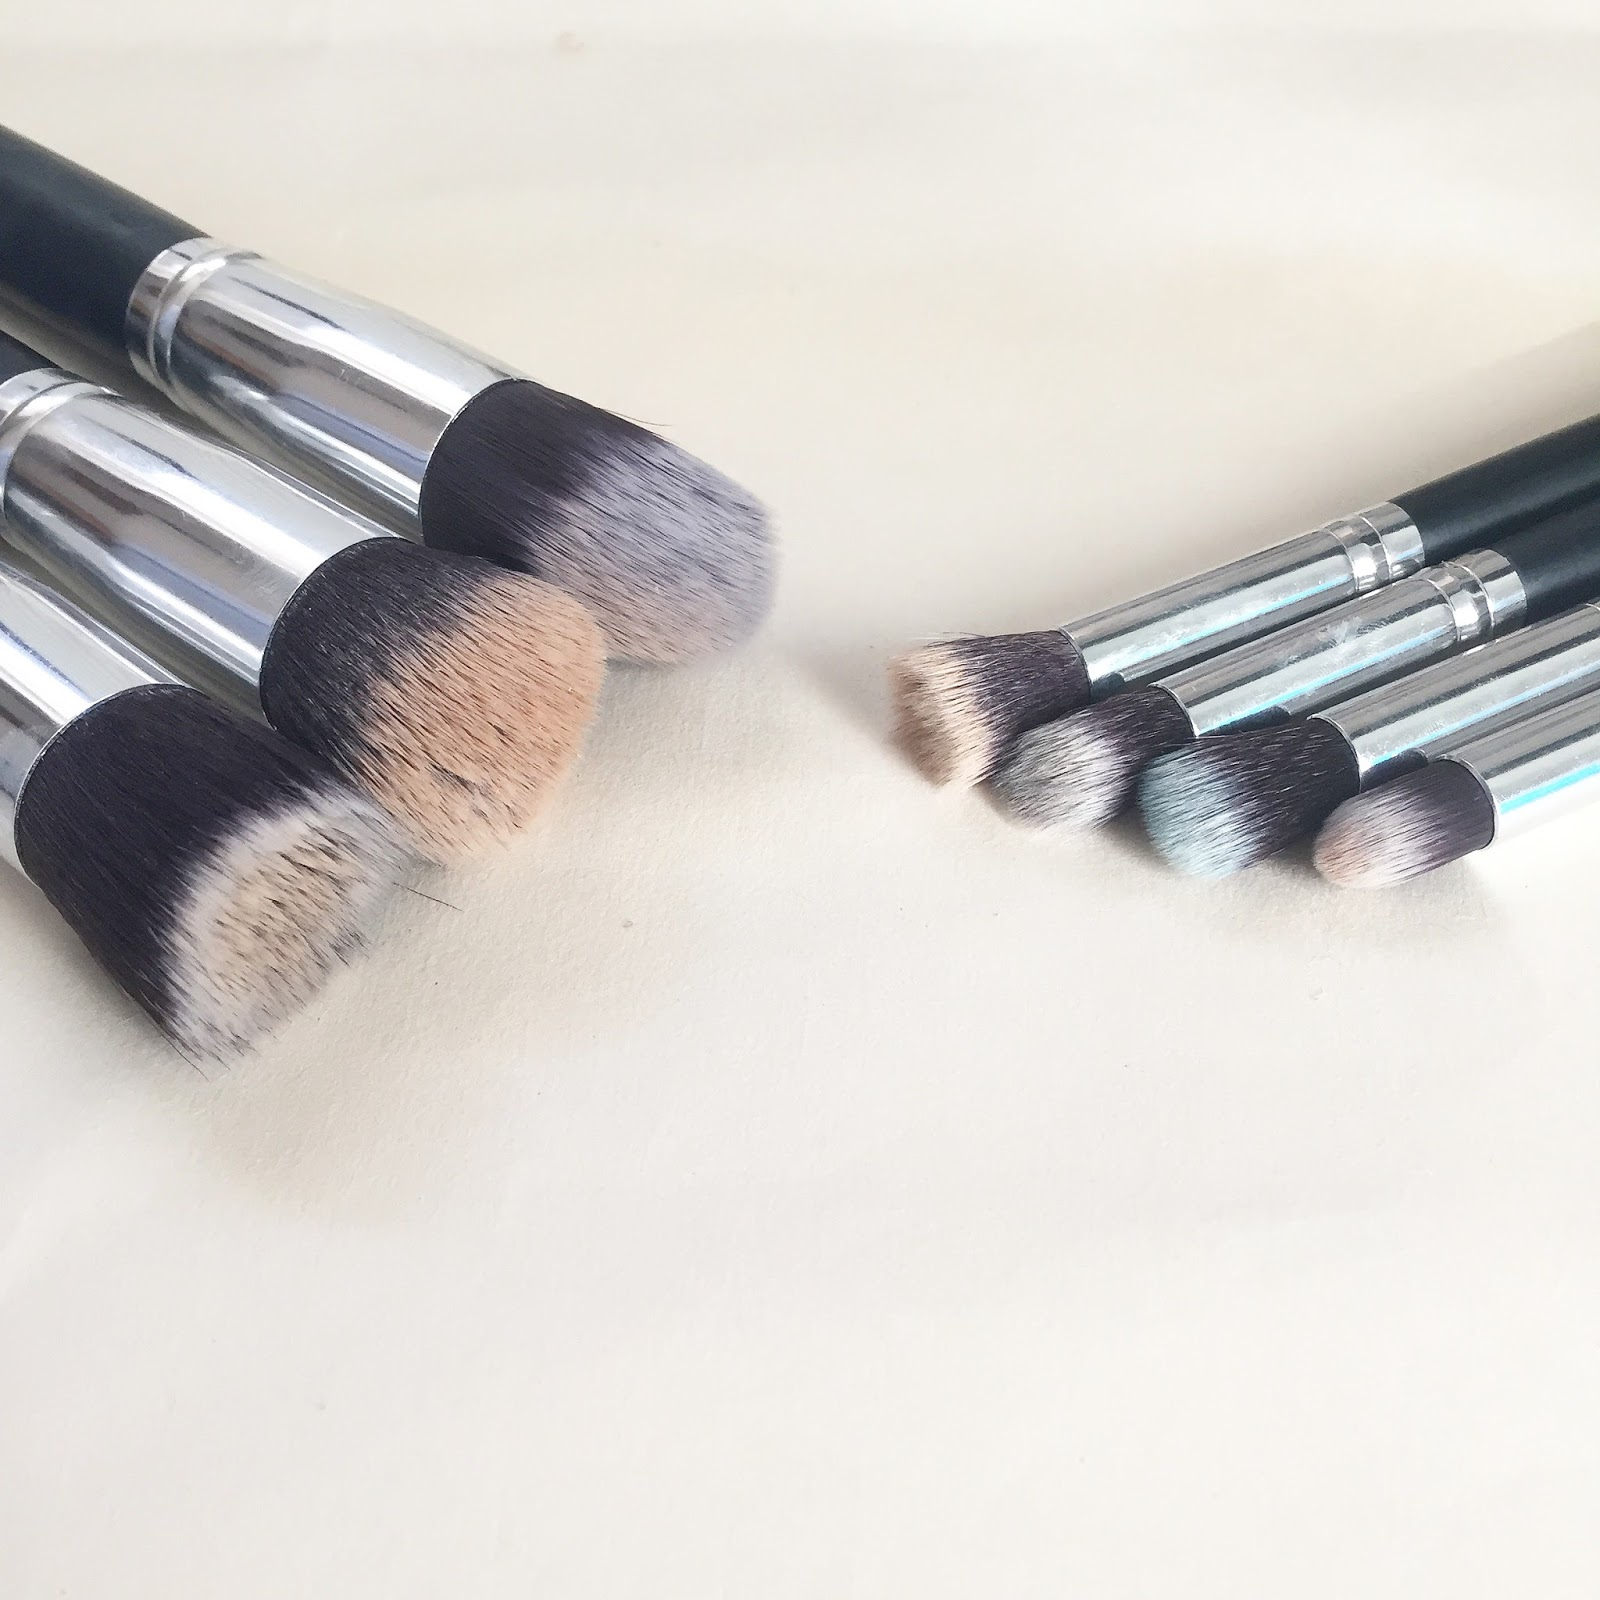 10 Brushes For £7